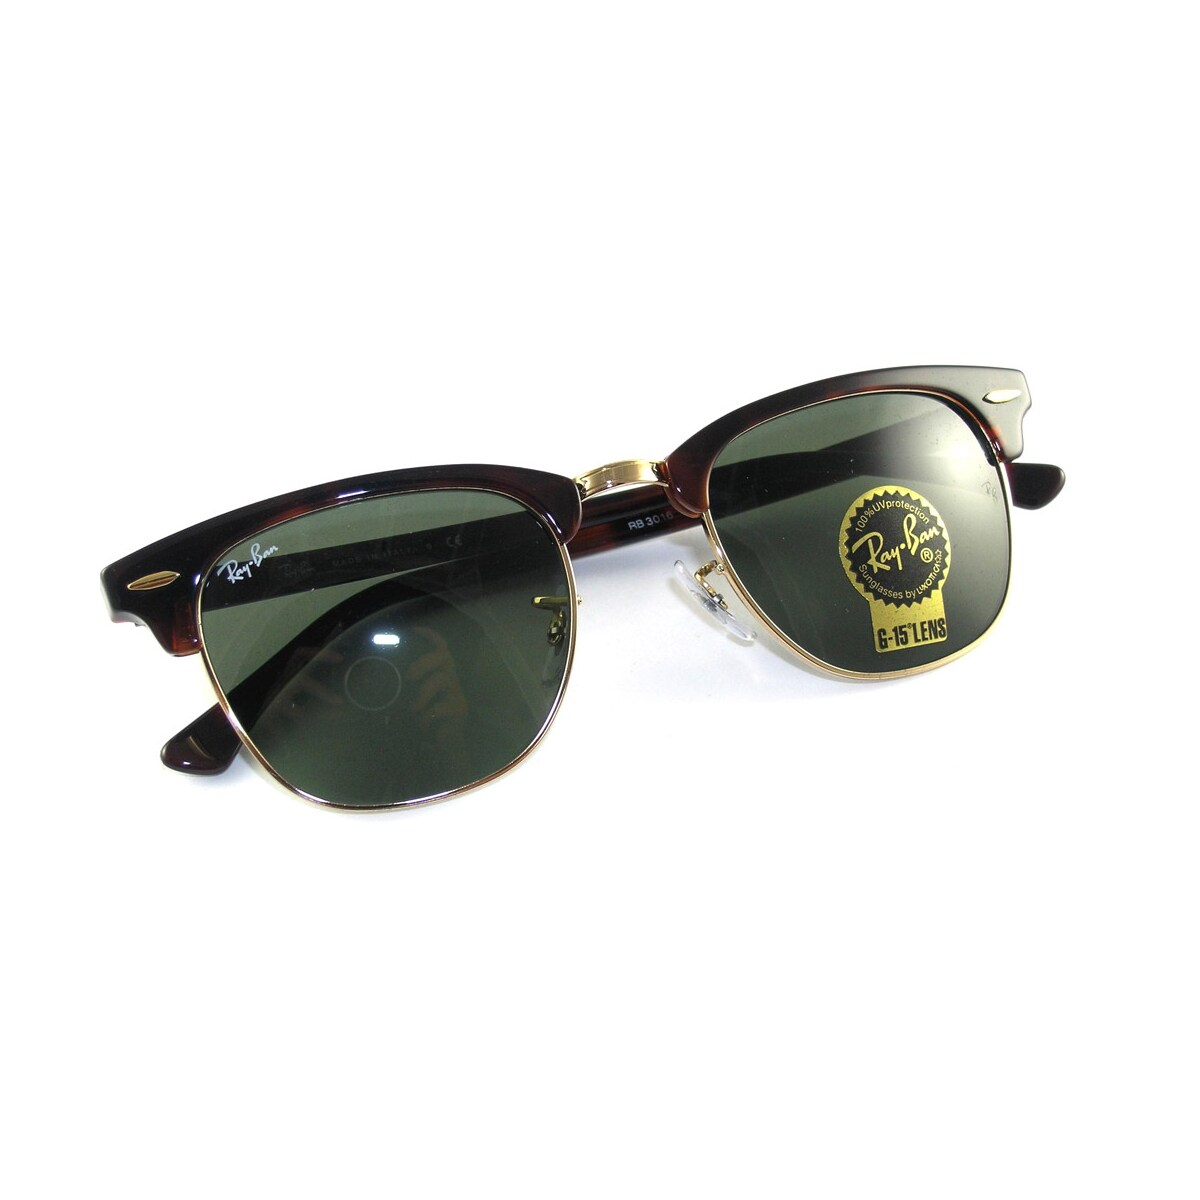 47ba2797f37 Shop Ray-Ban Clubmaster RB 3016 Unisex Tortoise Frame Green Classic Lens  Sunglasses - Free Shipping Today - Overstock - 6852790